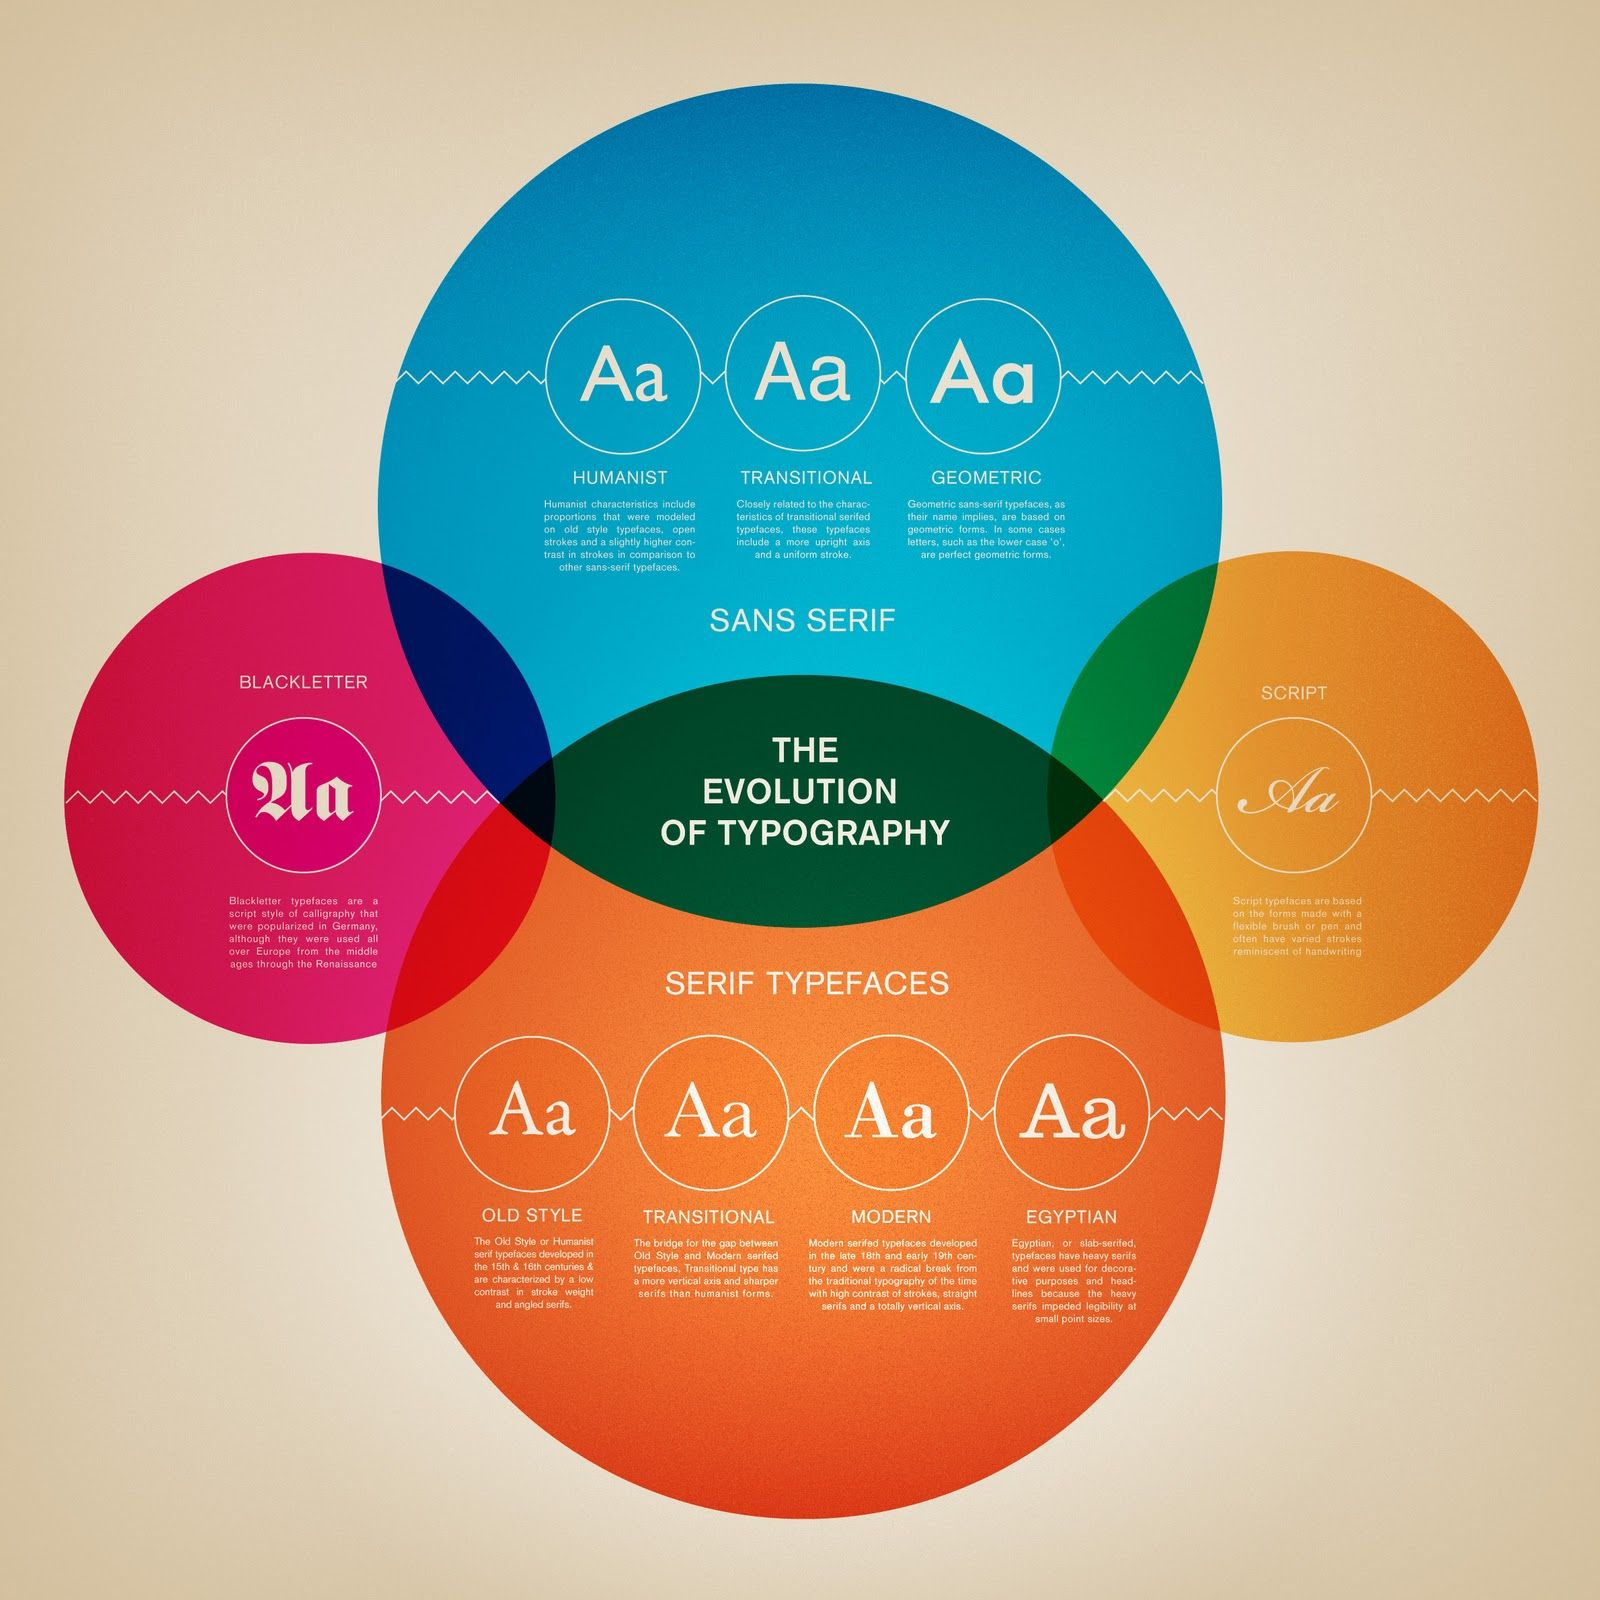 The evolution of typography infographic typography diagram evolution of typography ccuart Gallery